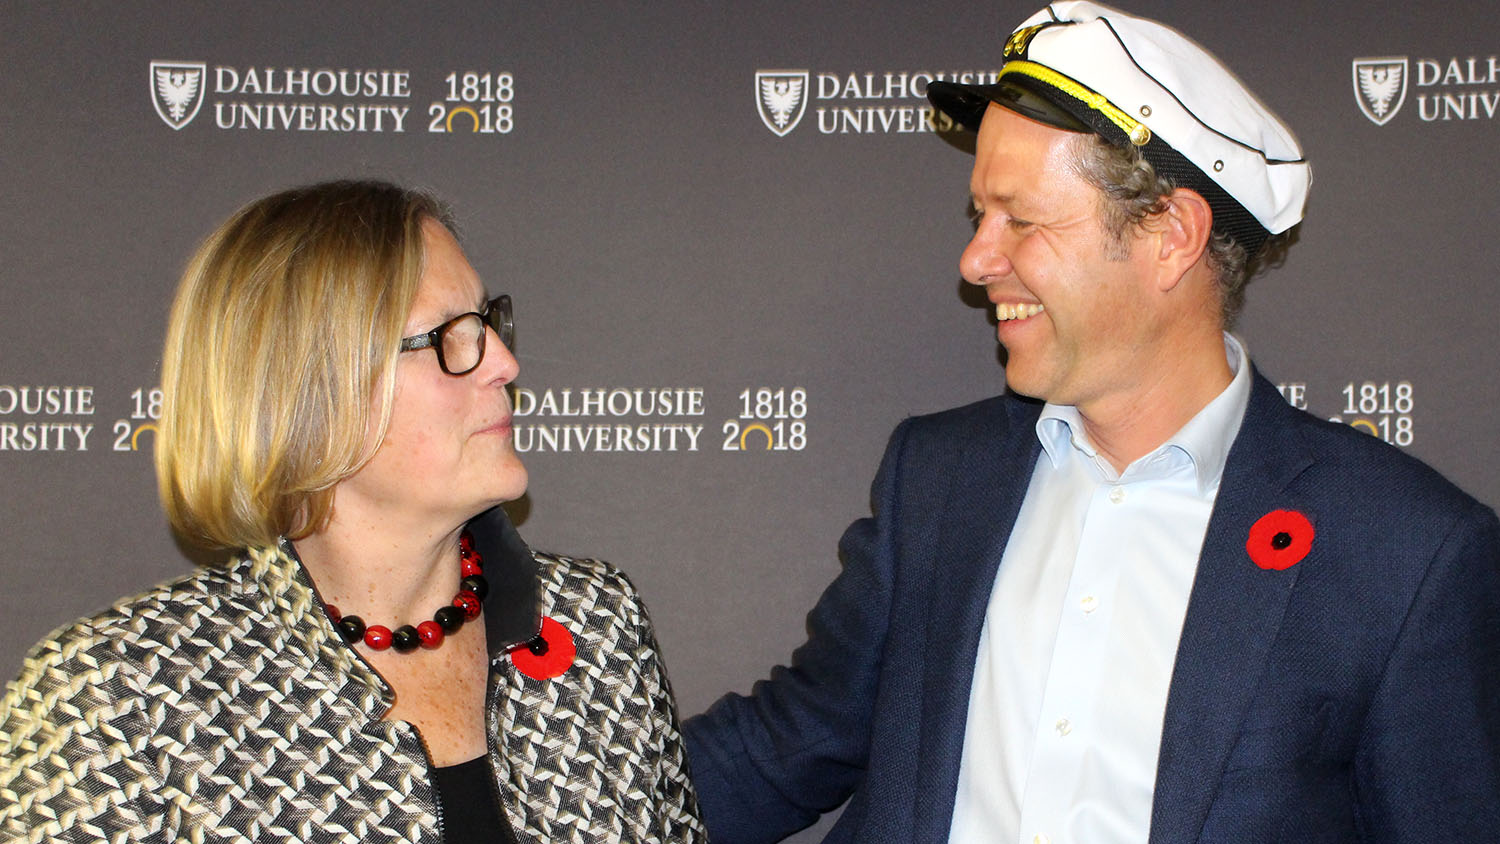 Kathryn Sullivan reconciles with opponent Boris Worm after the Great Debate at Dalhousie University.